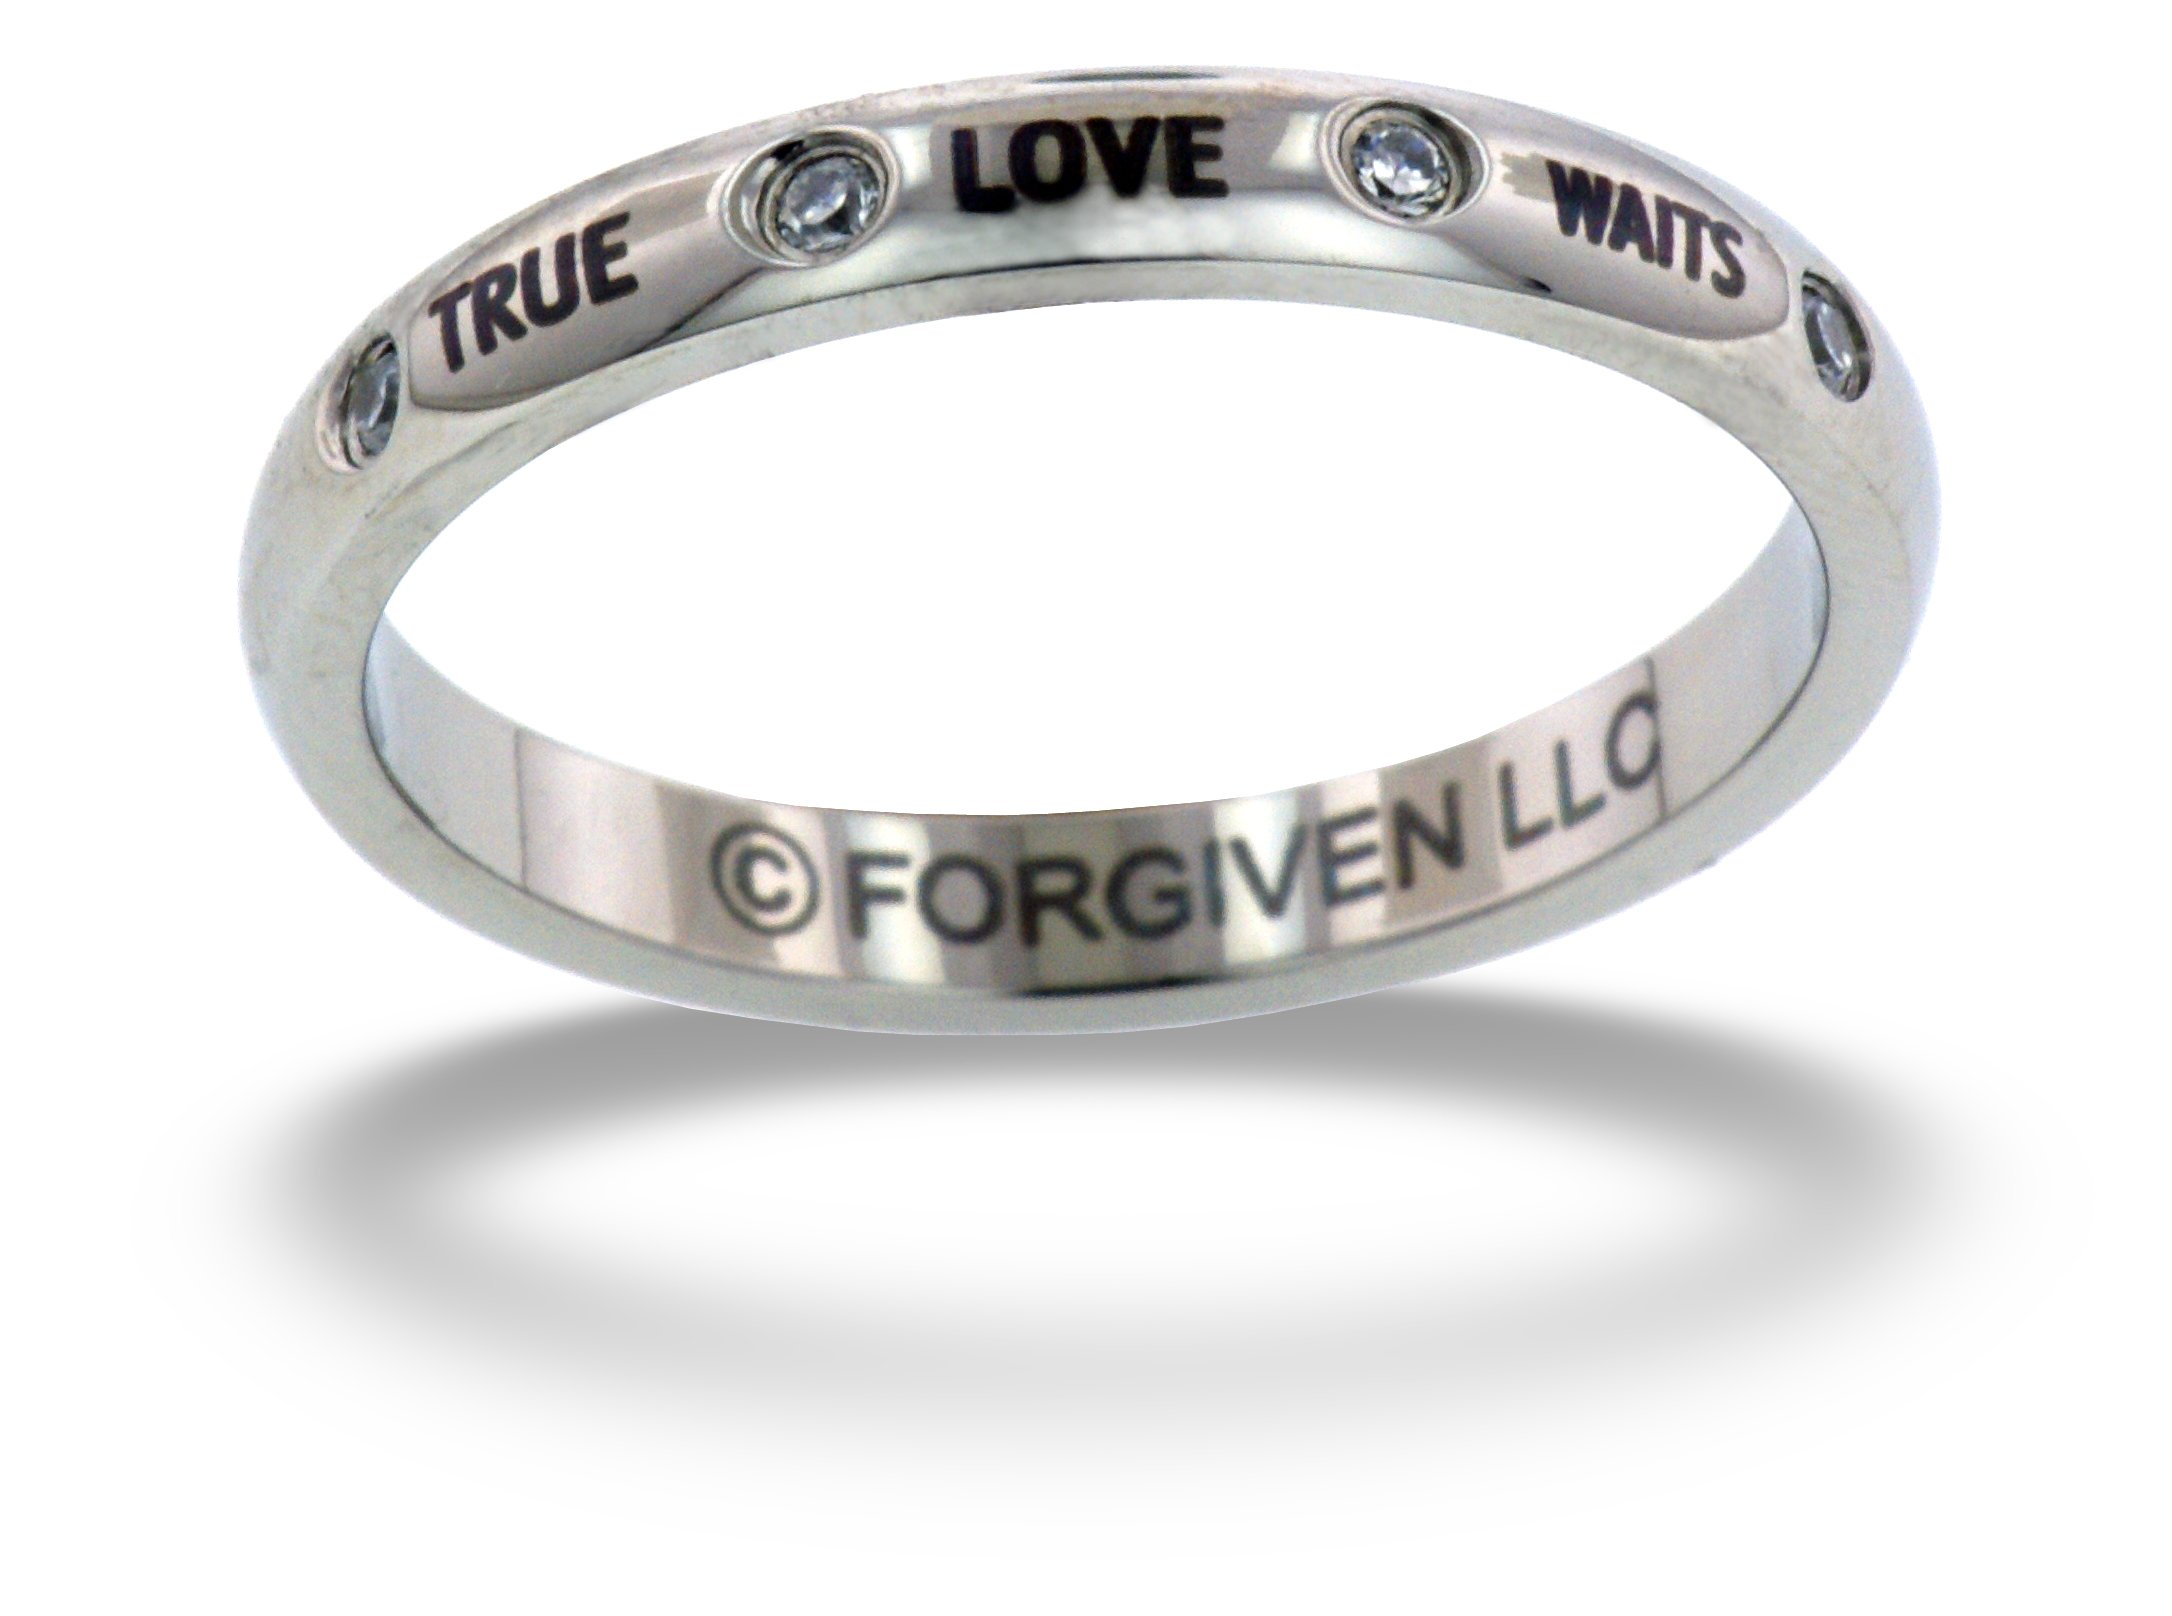 RTLWA-TRUE LOVE WAITS Crystal Purity Band Stainless Steel Ring size 10-Christian Jewelry by Forgiven Jewelry (Image #1)